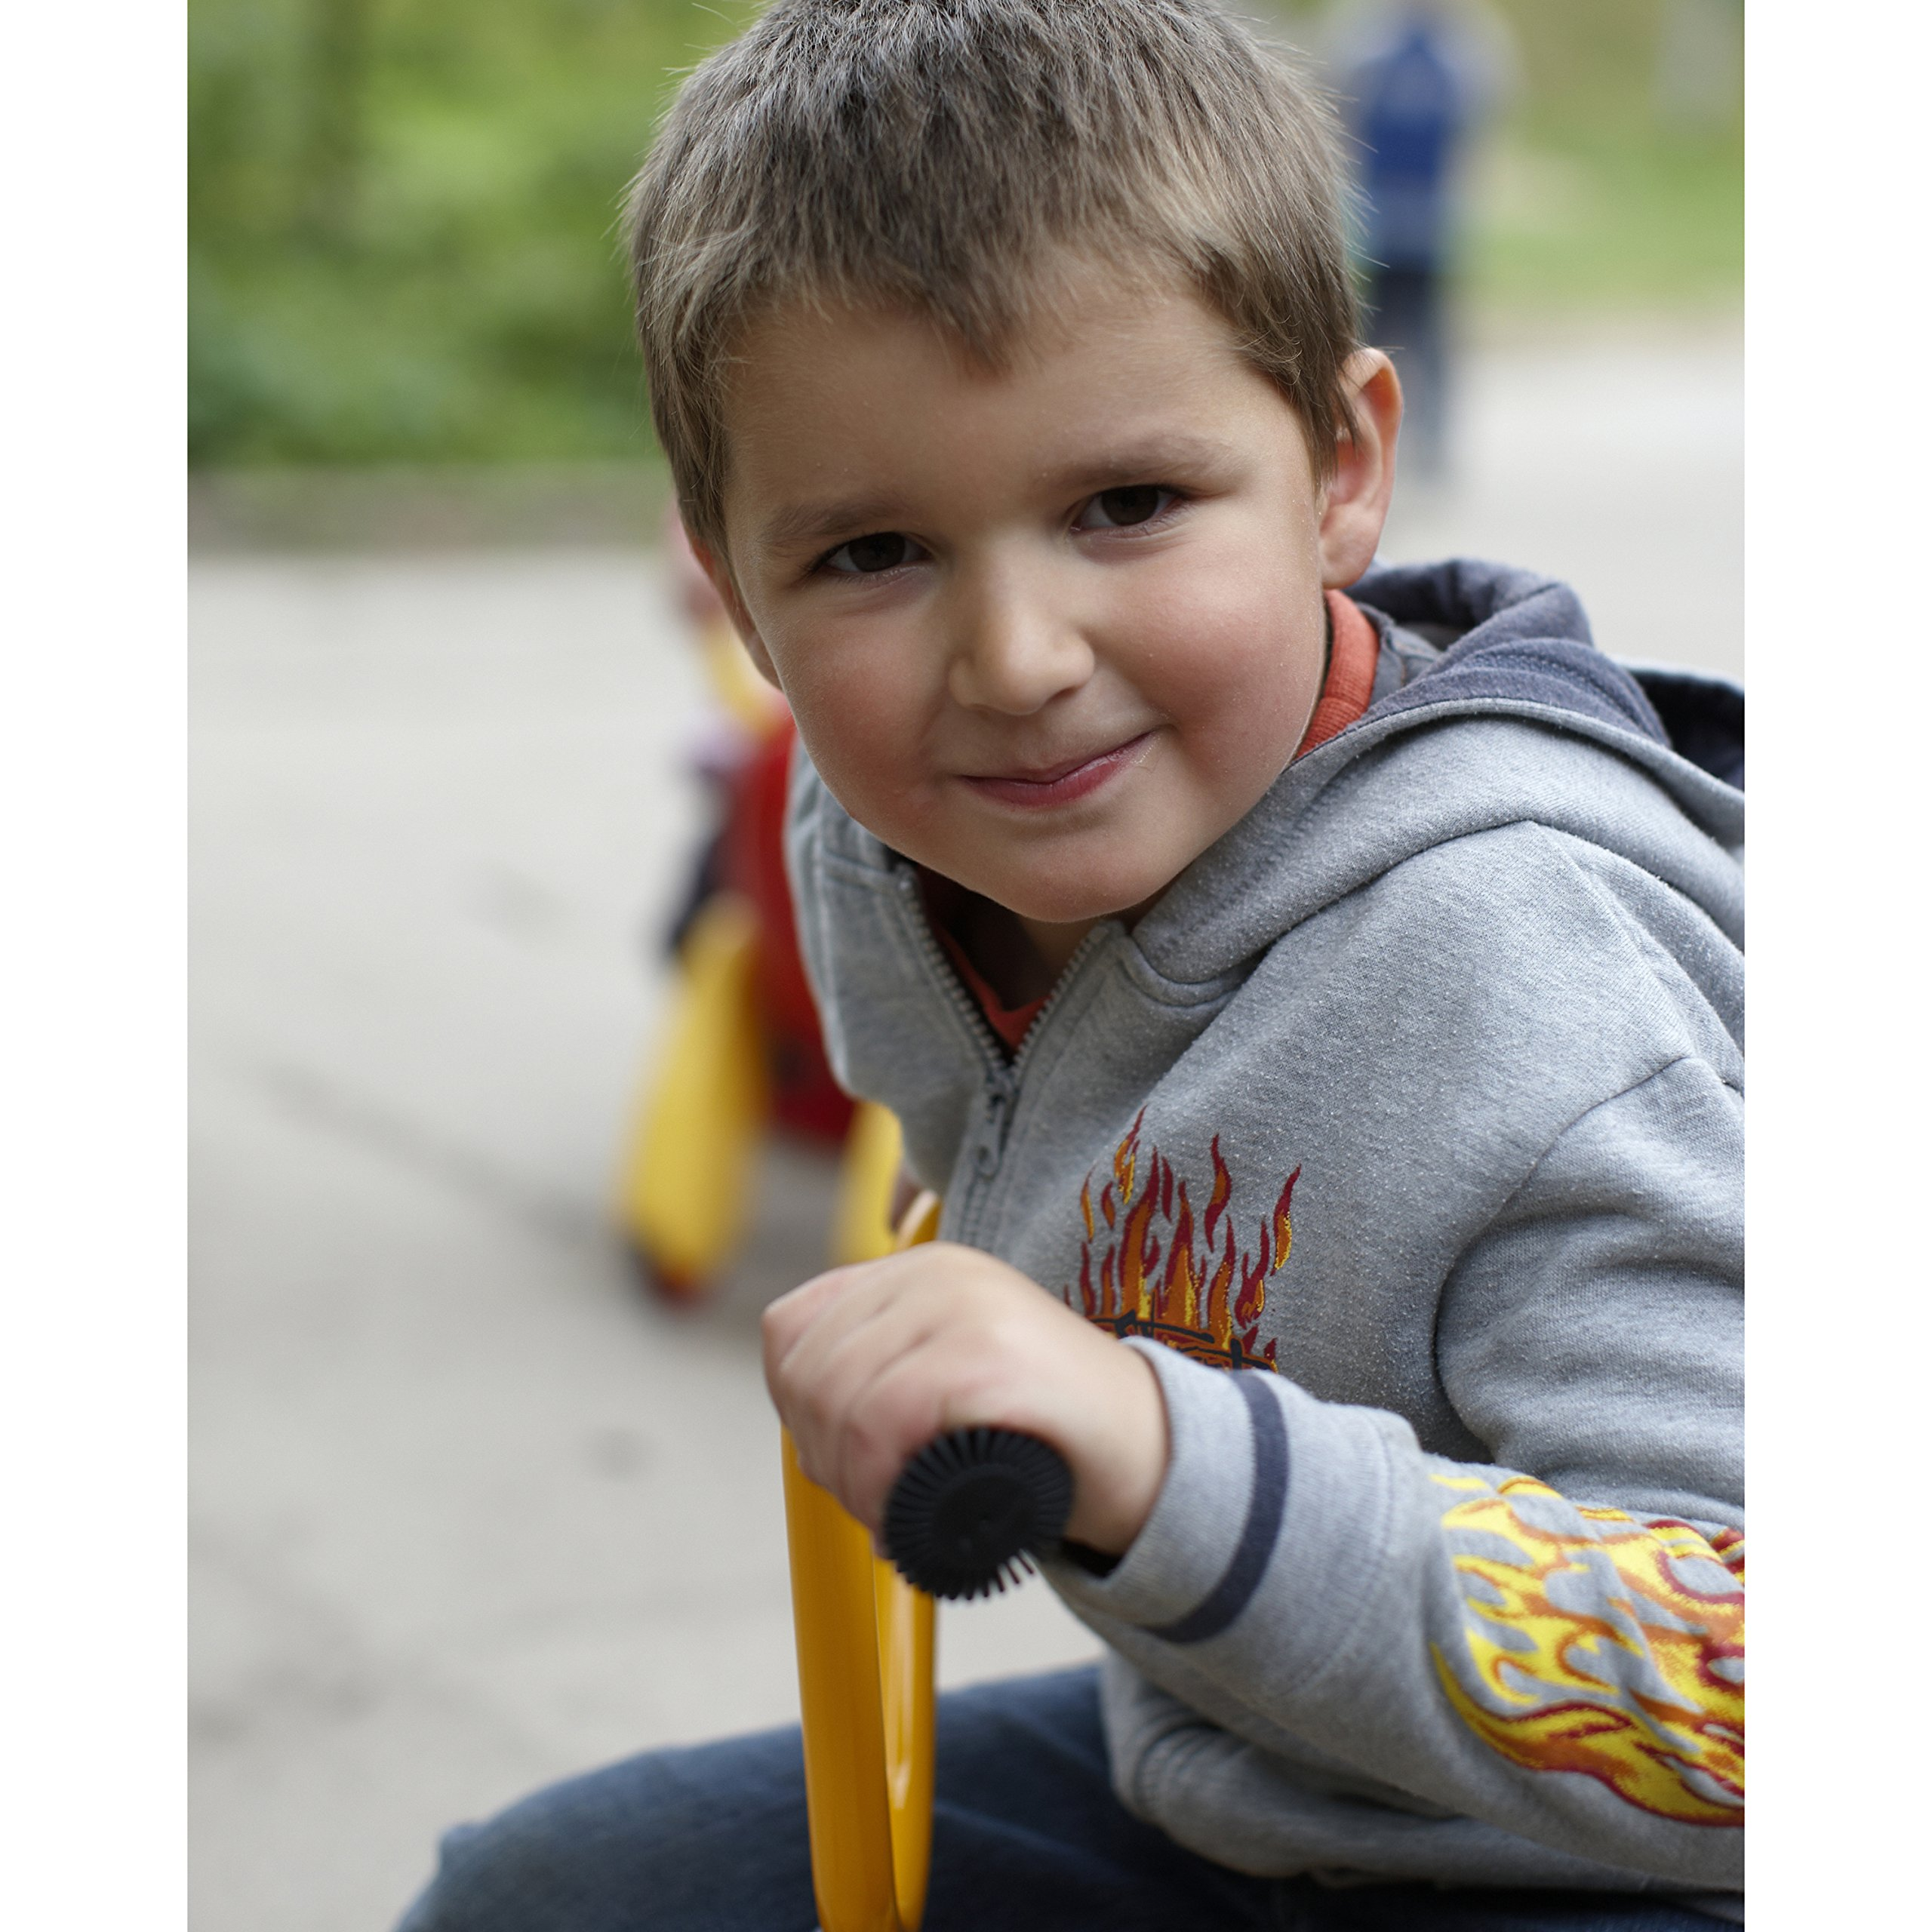 Winther WIN582 Tricycle Grade Kindergarten to 1, 10.63'' Height, 16.93'' Wide, 21.06'' Length by Winther (Image #3)